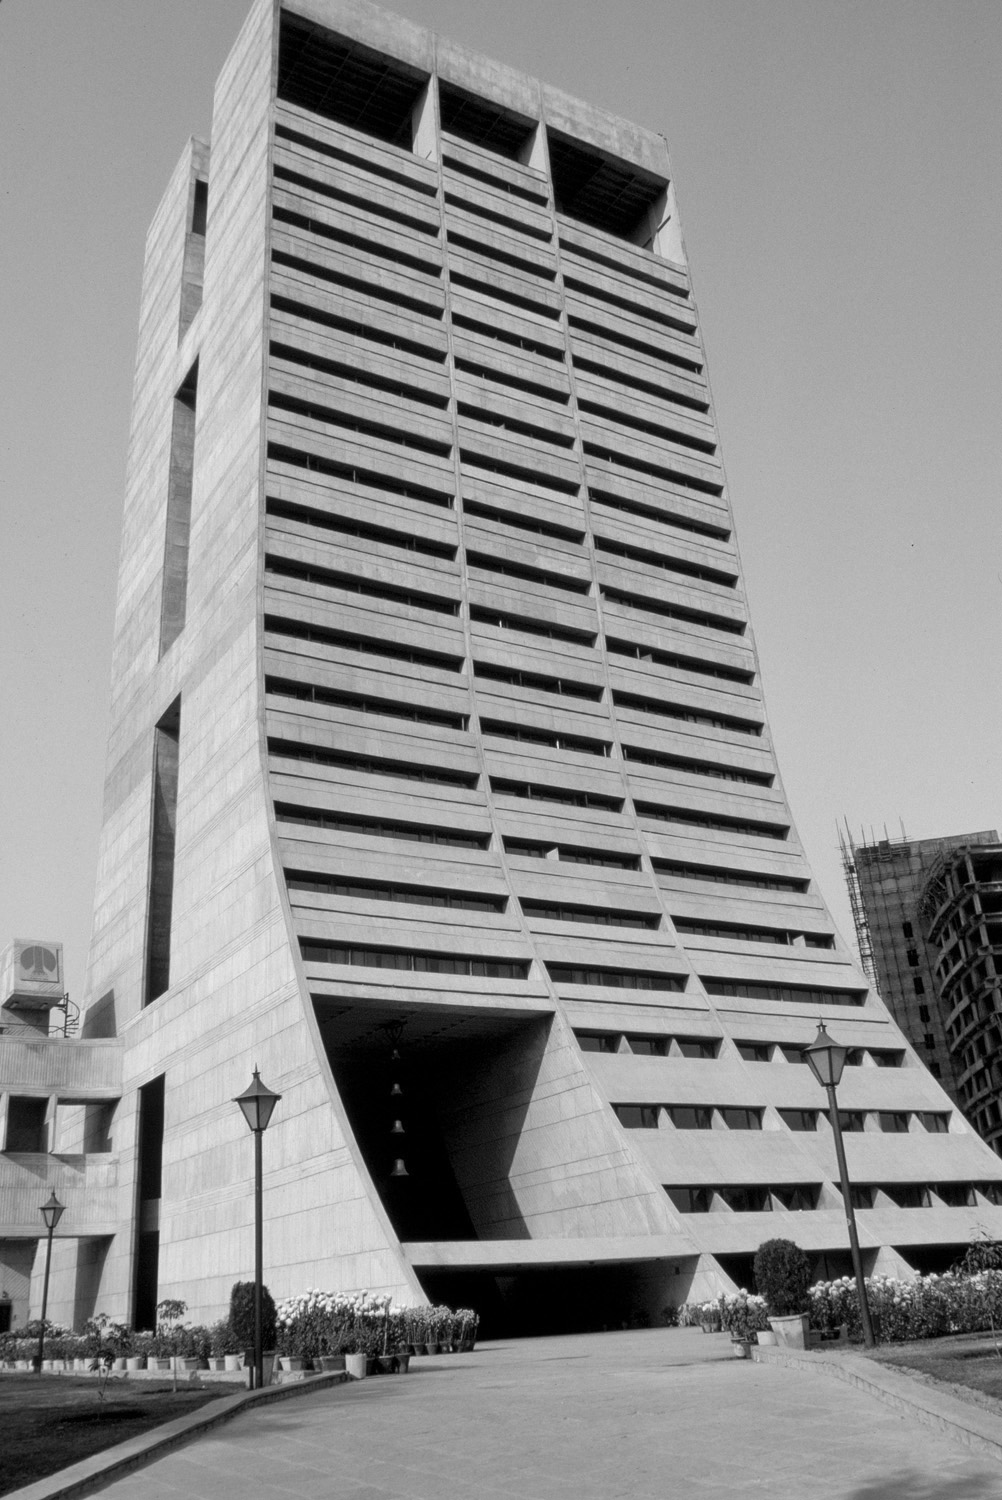 A journey of 100 years of Architecture in India | Part 02 - 1965-83 Palika Kendra,New Delhi